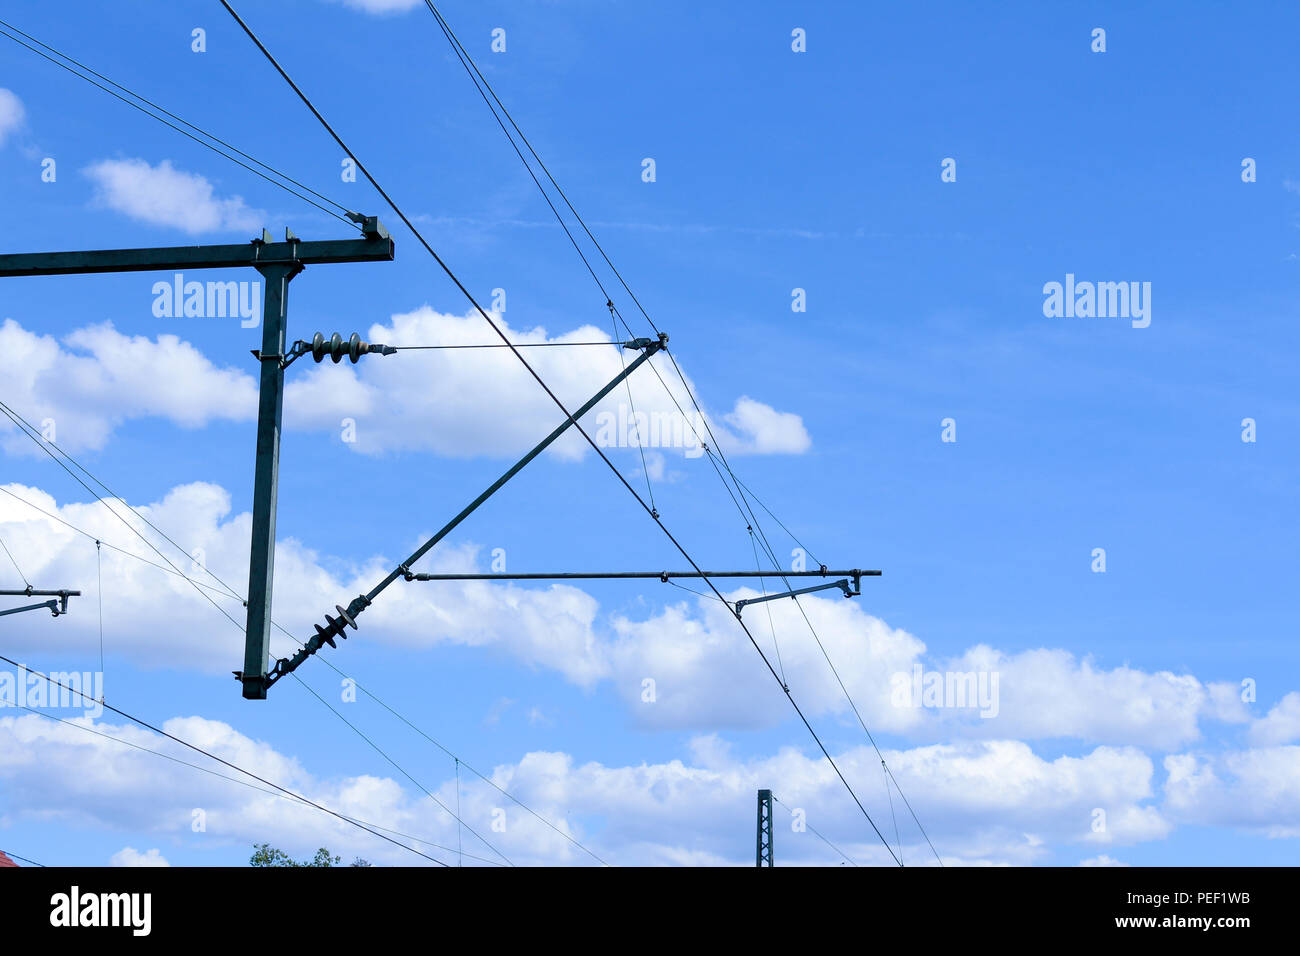 Electric train lines railway electrification overhead system with wires and blue sky above - Stock Image